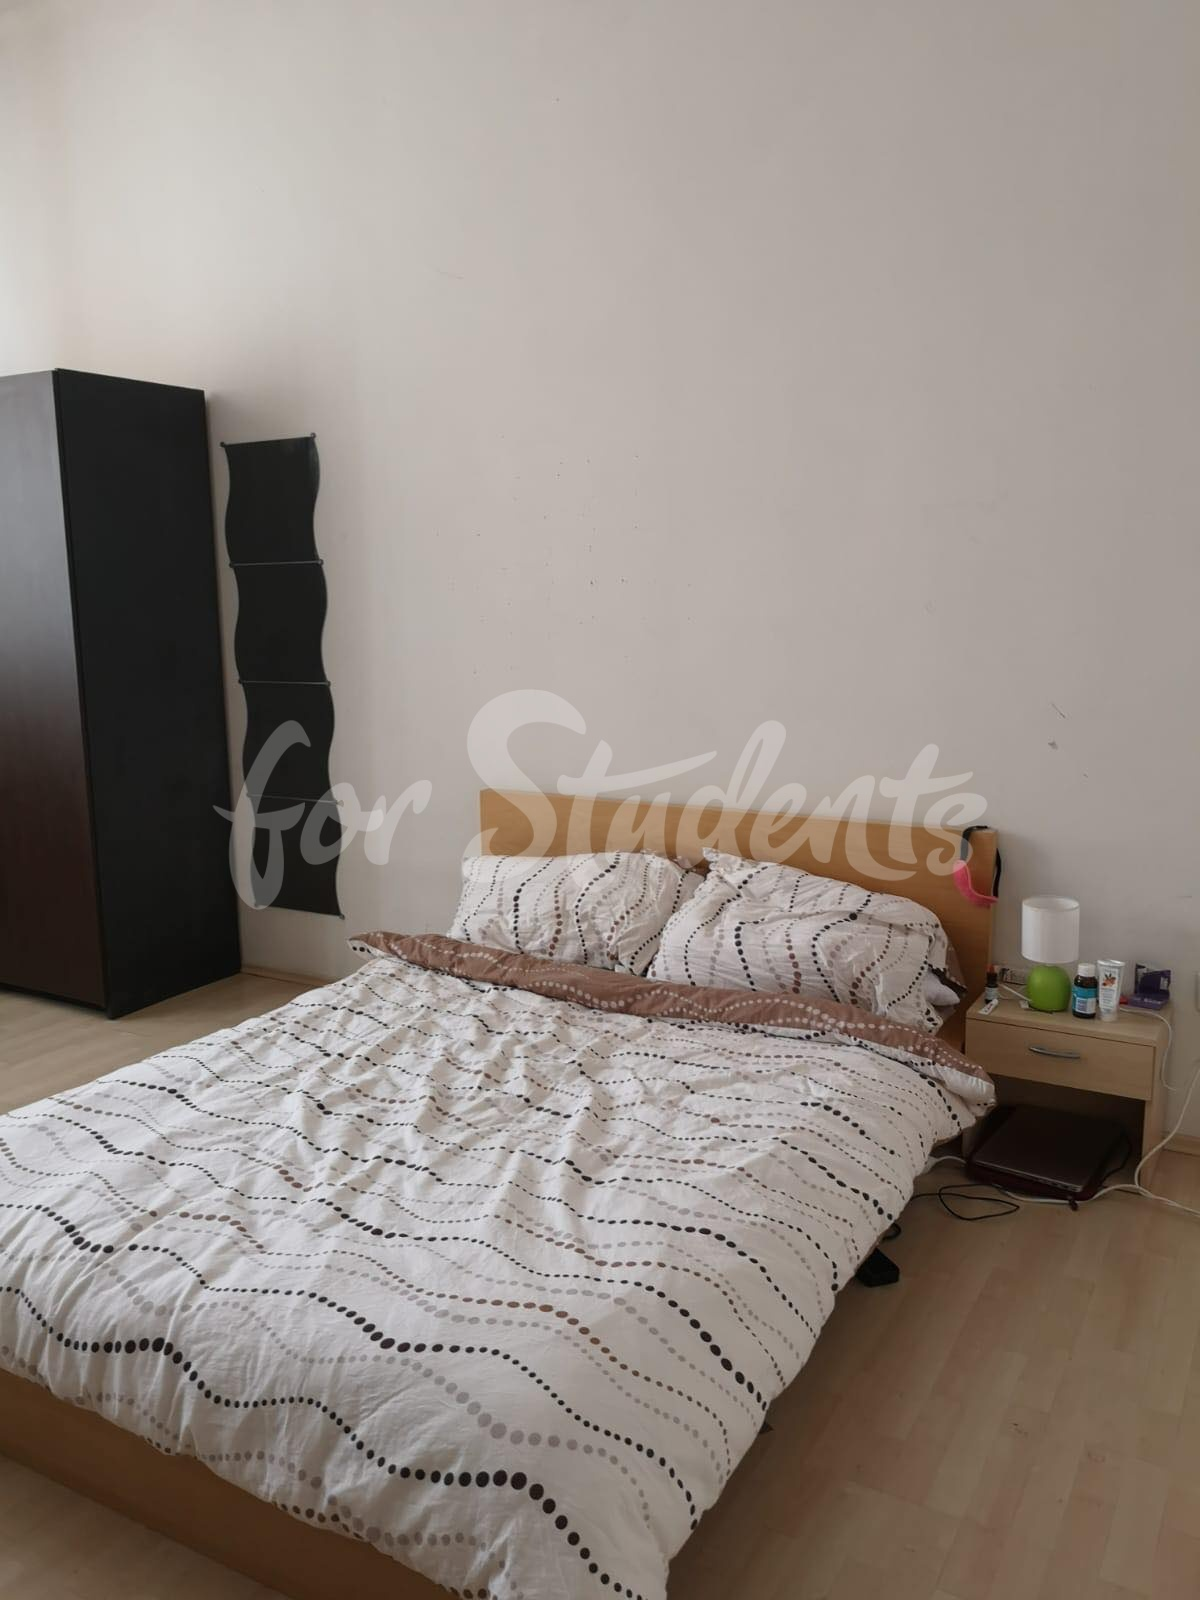 1 bedroom available in 3bedroom apartment in popular student´s residency